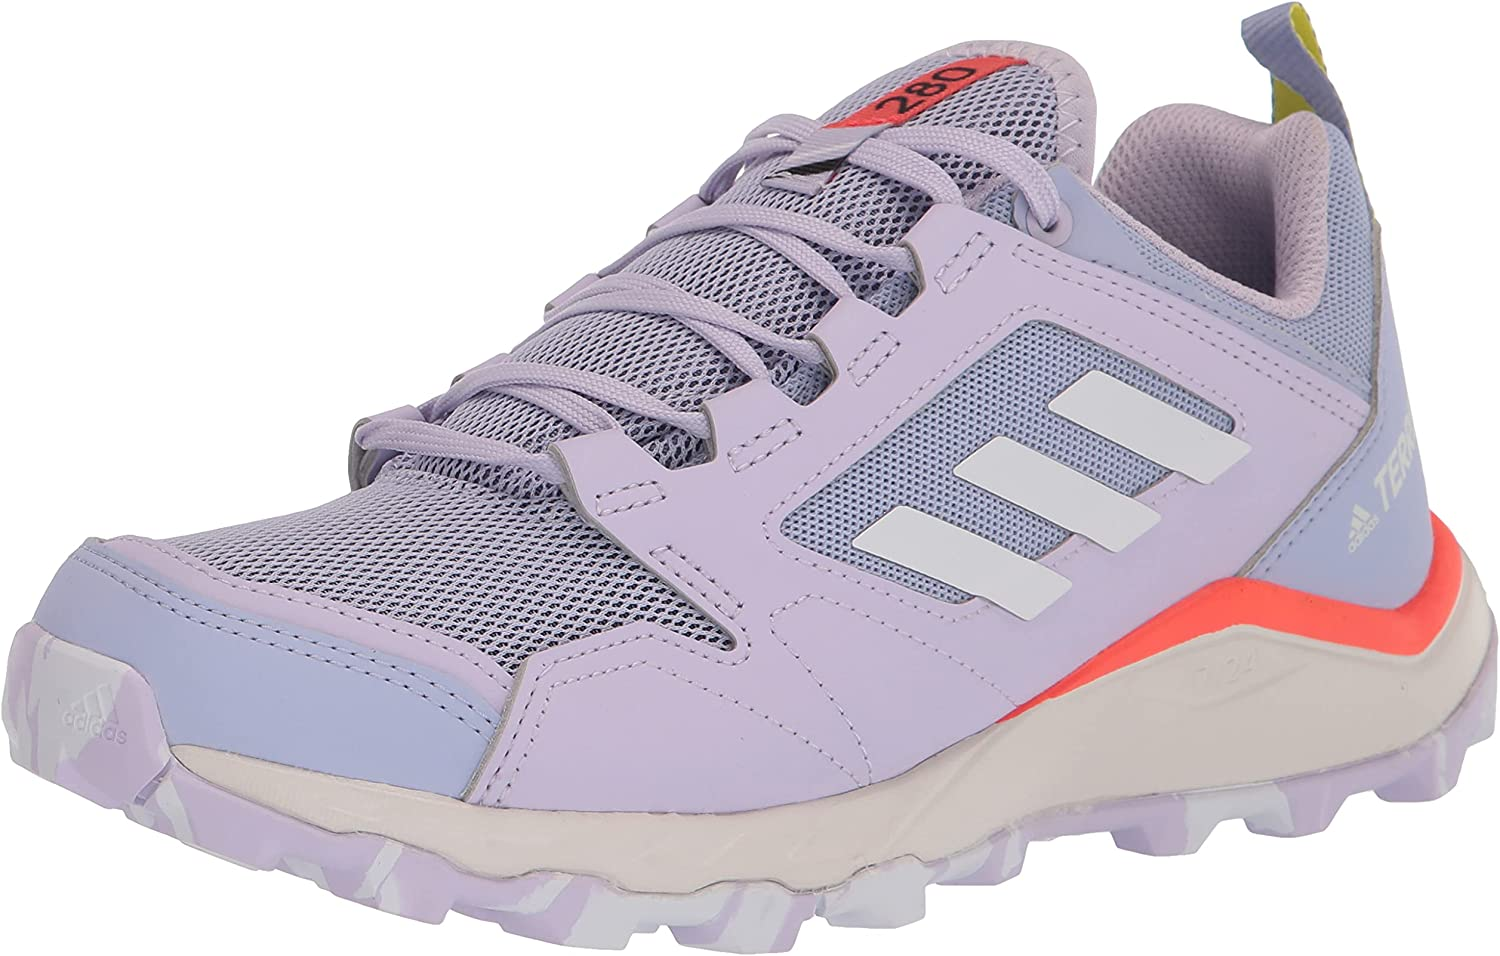 adidas OFFicial Women's Terrex Agravic Tr Running Max 68% OFF Shoe Trail